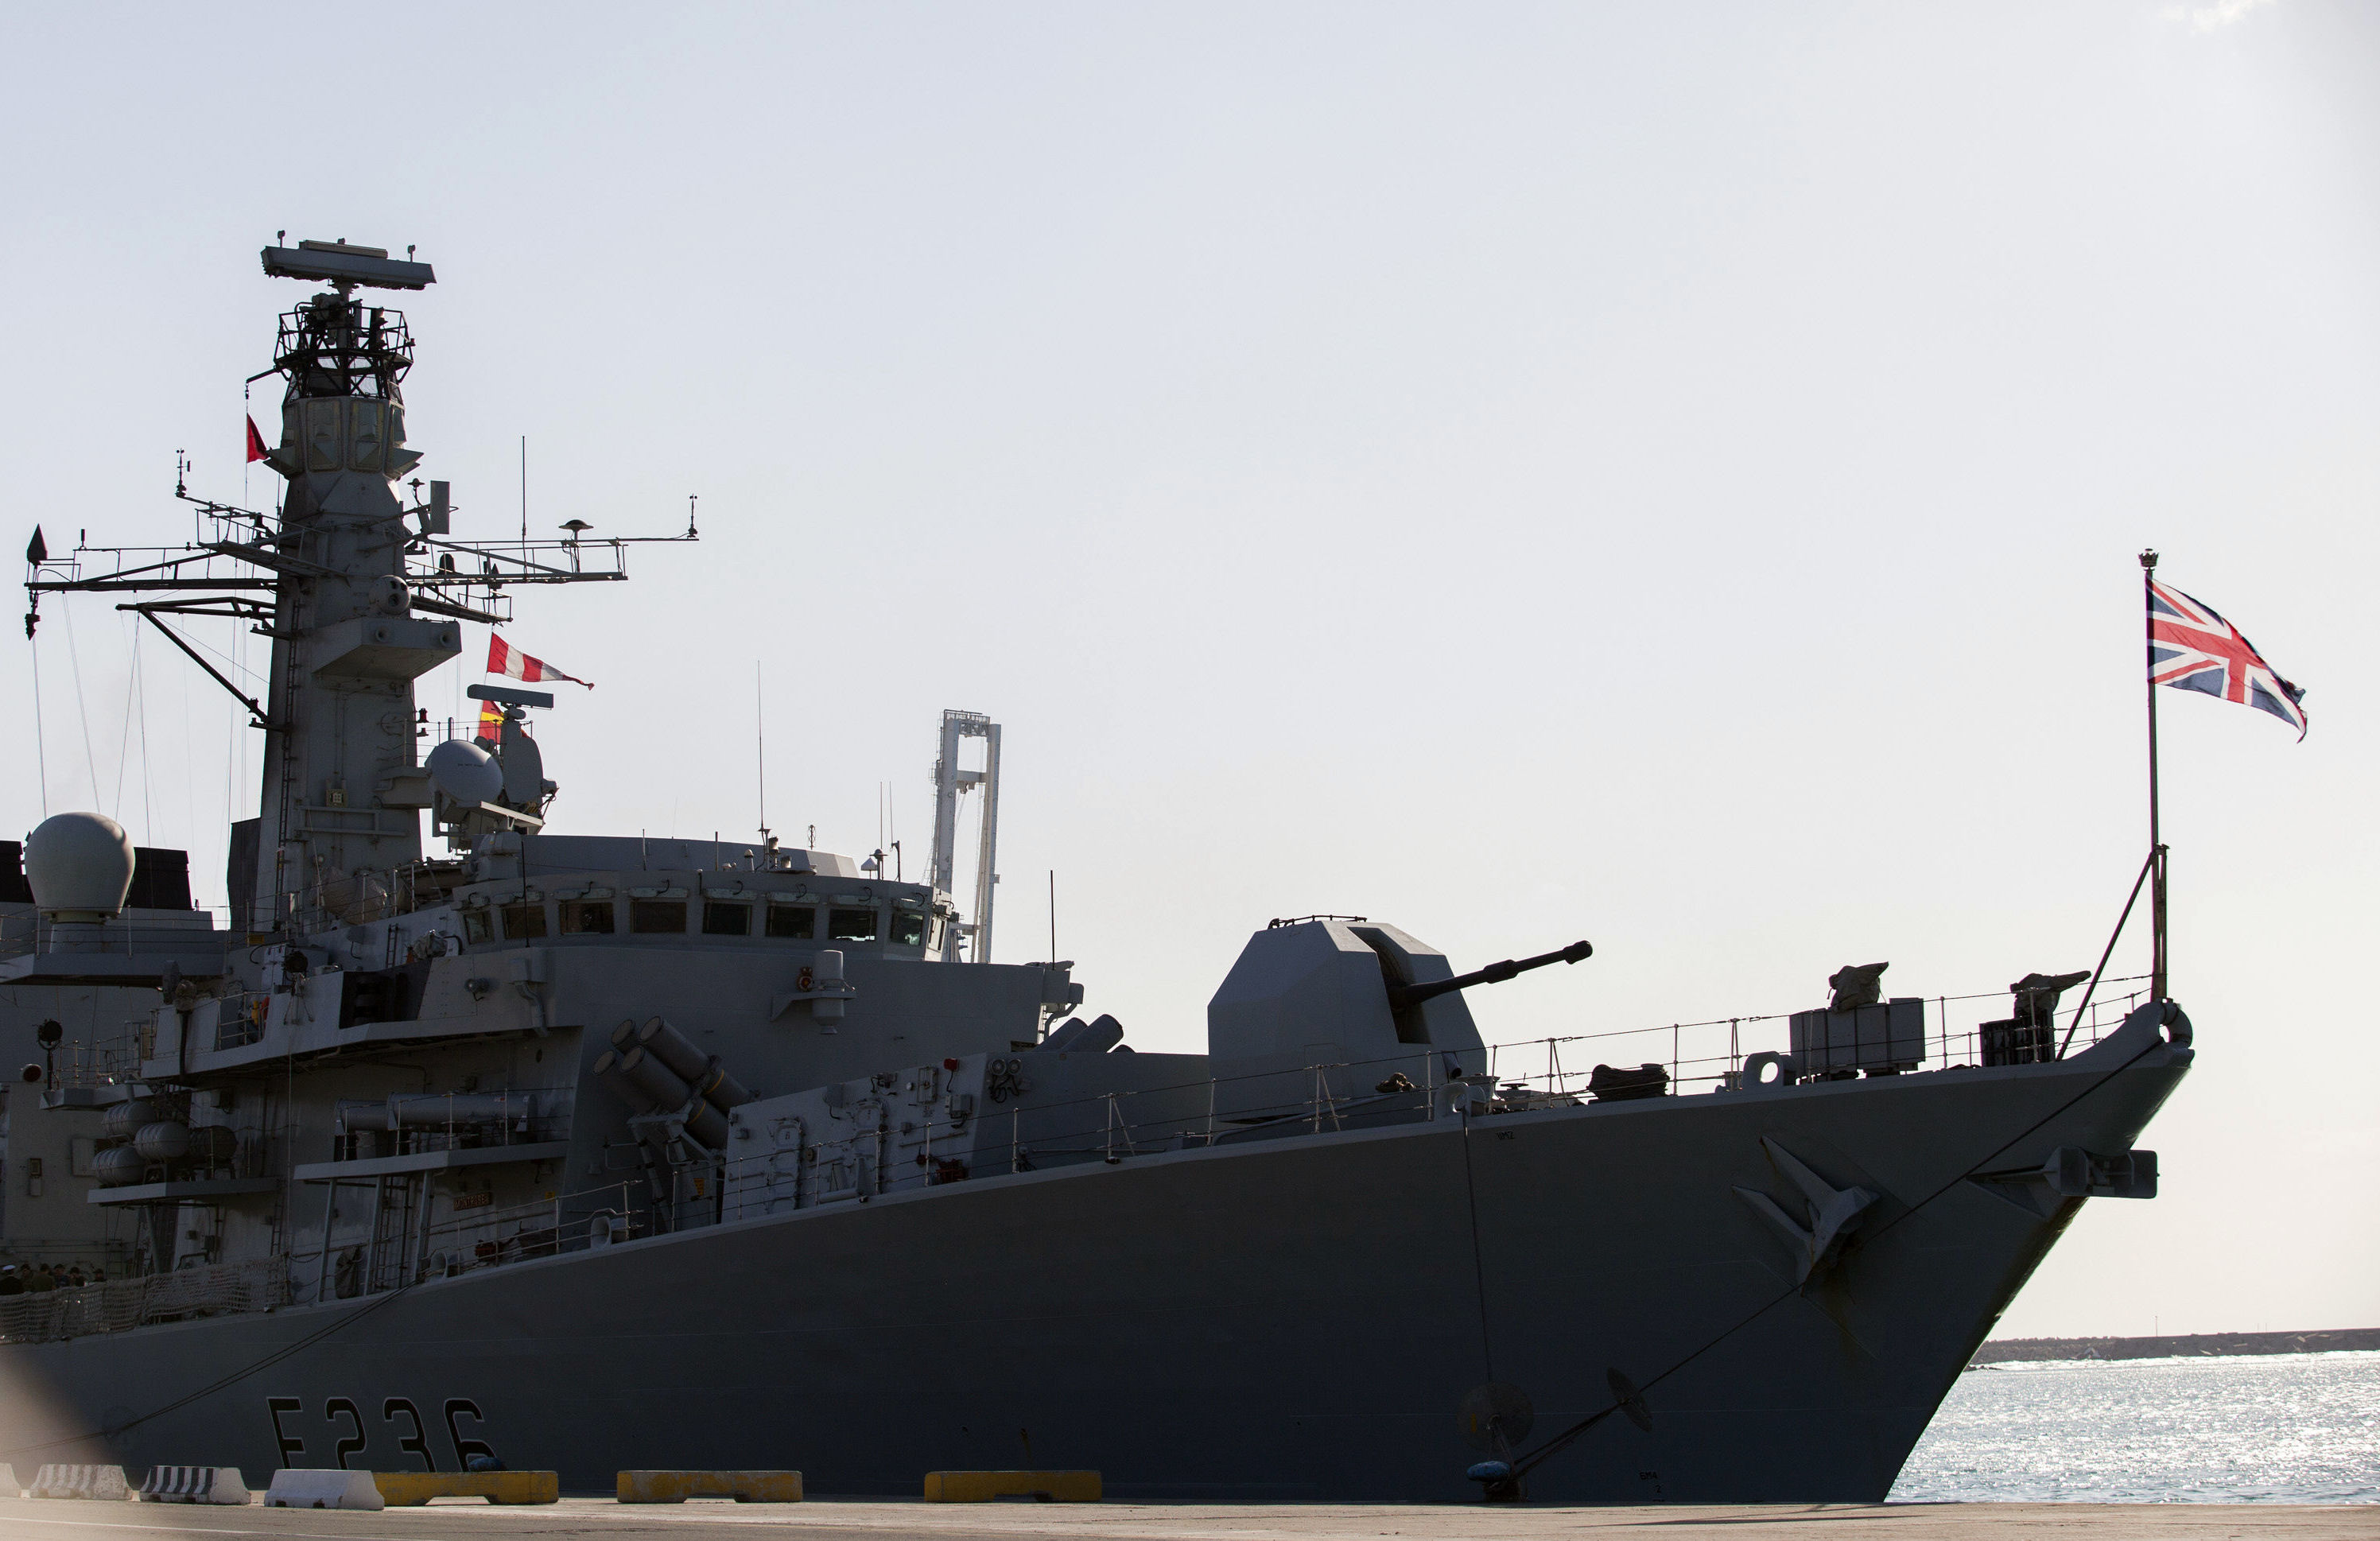 A picture taken on February 3, 2014, shows the British warship HMS Montrose docked in the Cypriot port of Limassol on February 3, 2014